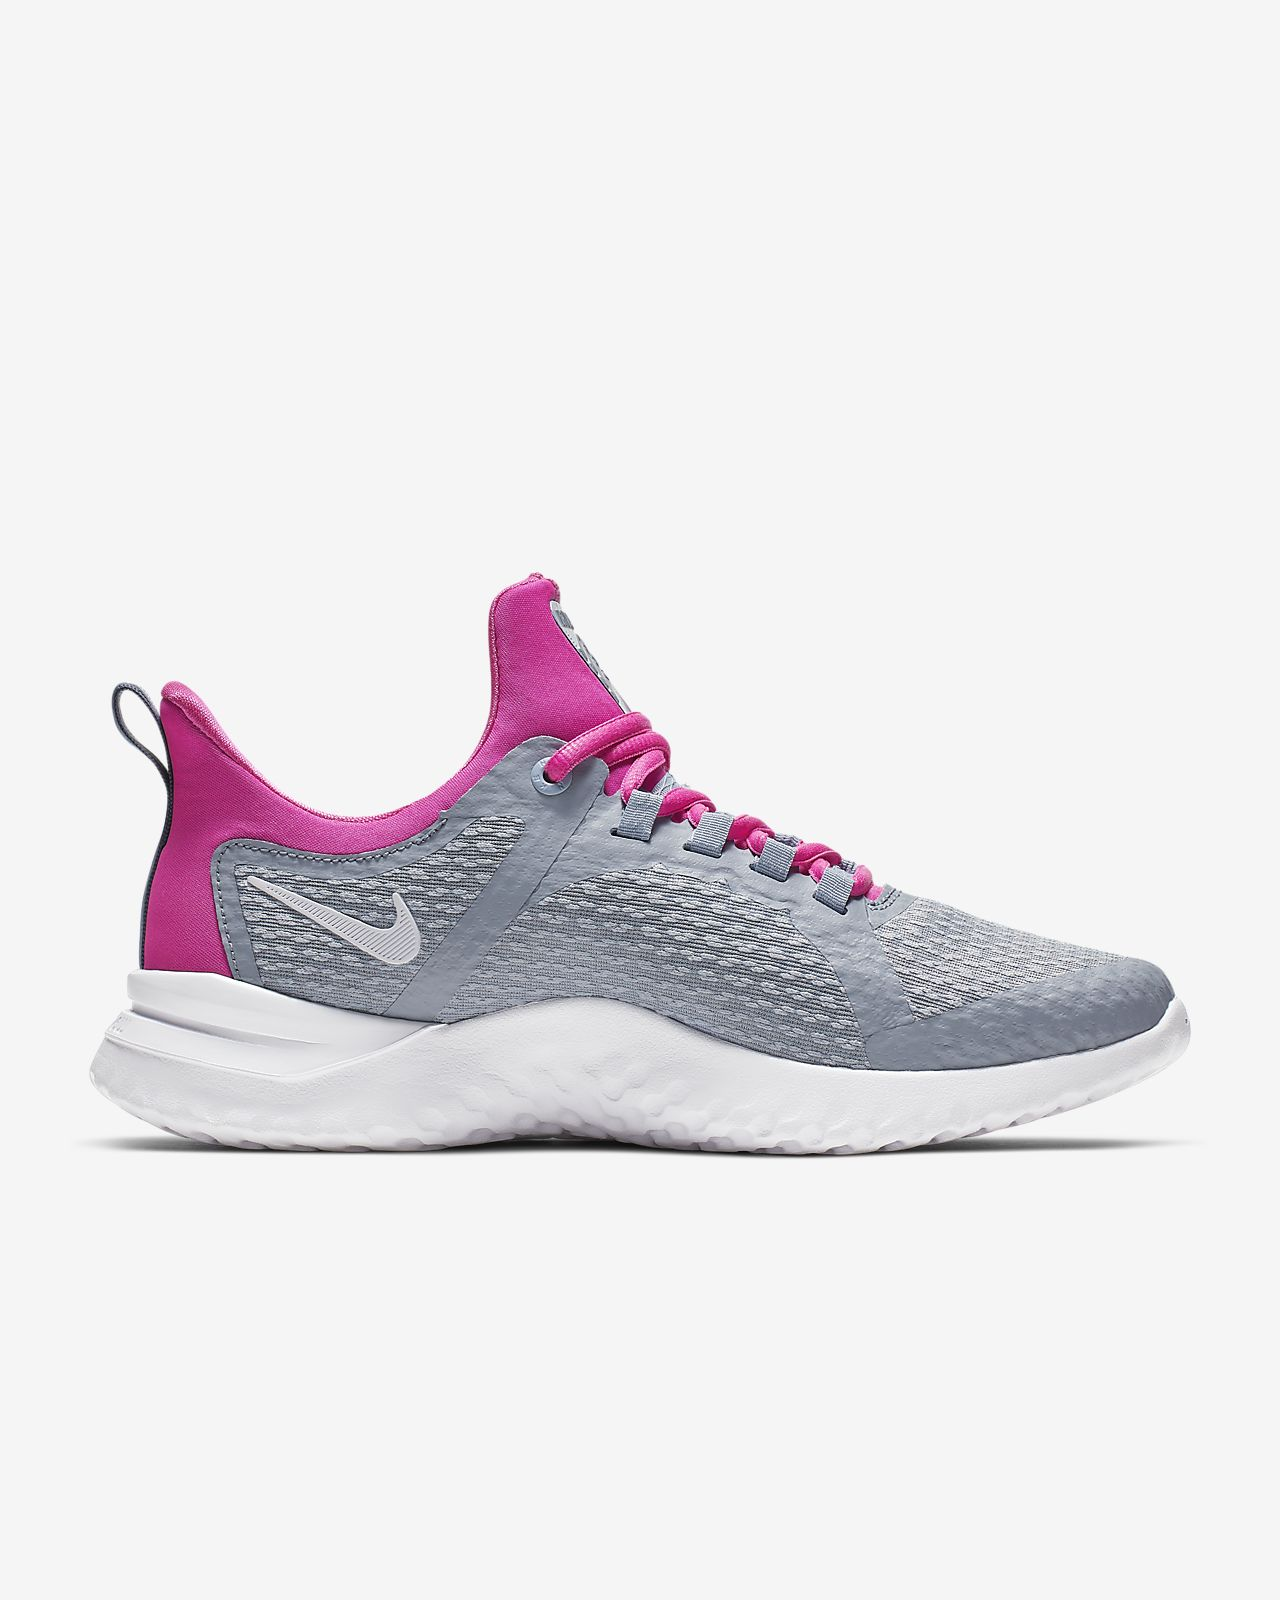 Nike Shoes, Sneakers, Tennis Shoes & Running Shoes  DSW